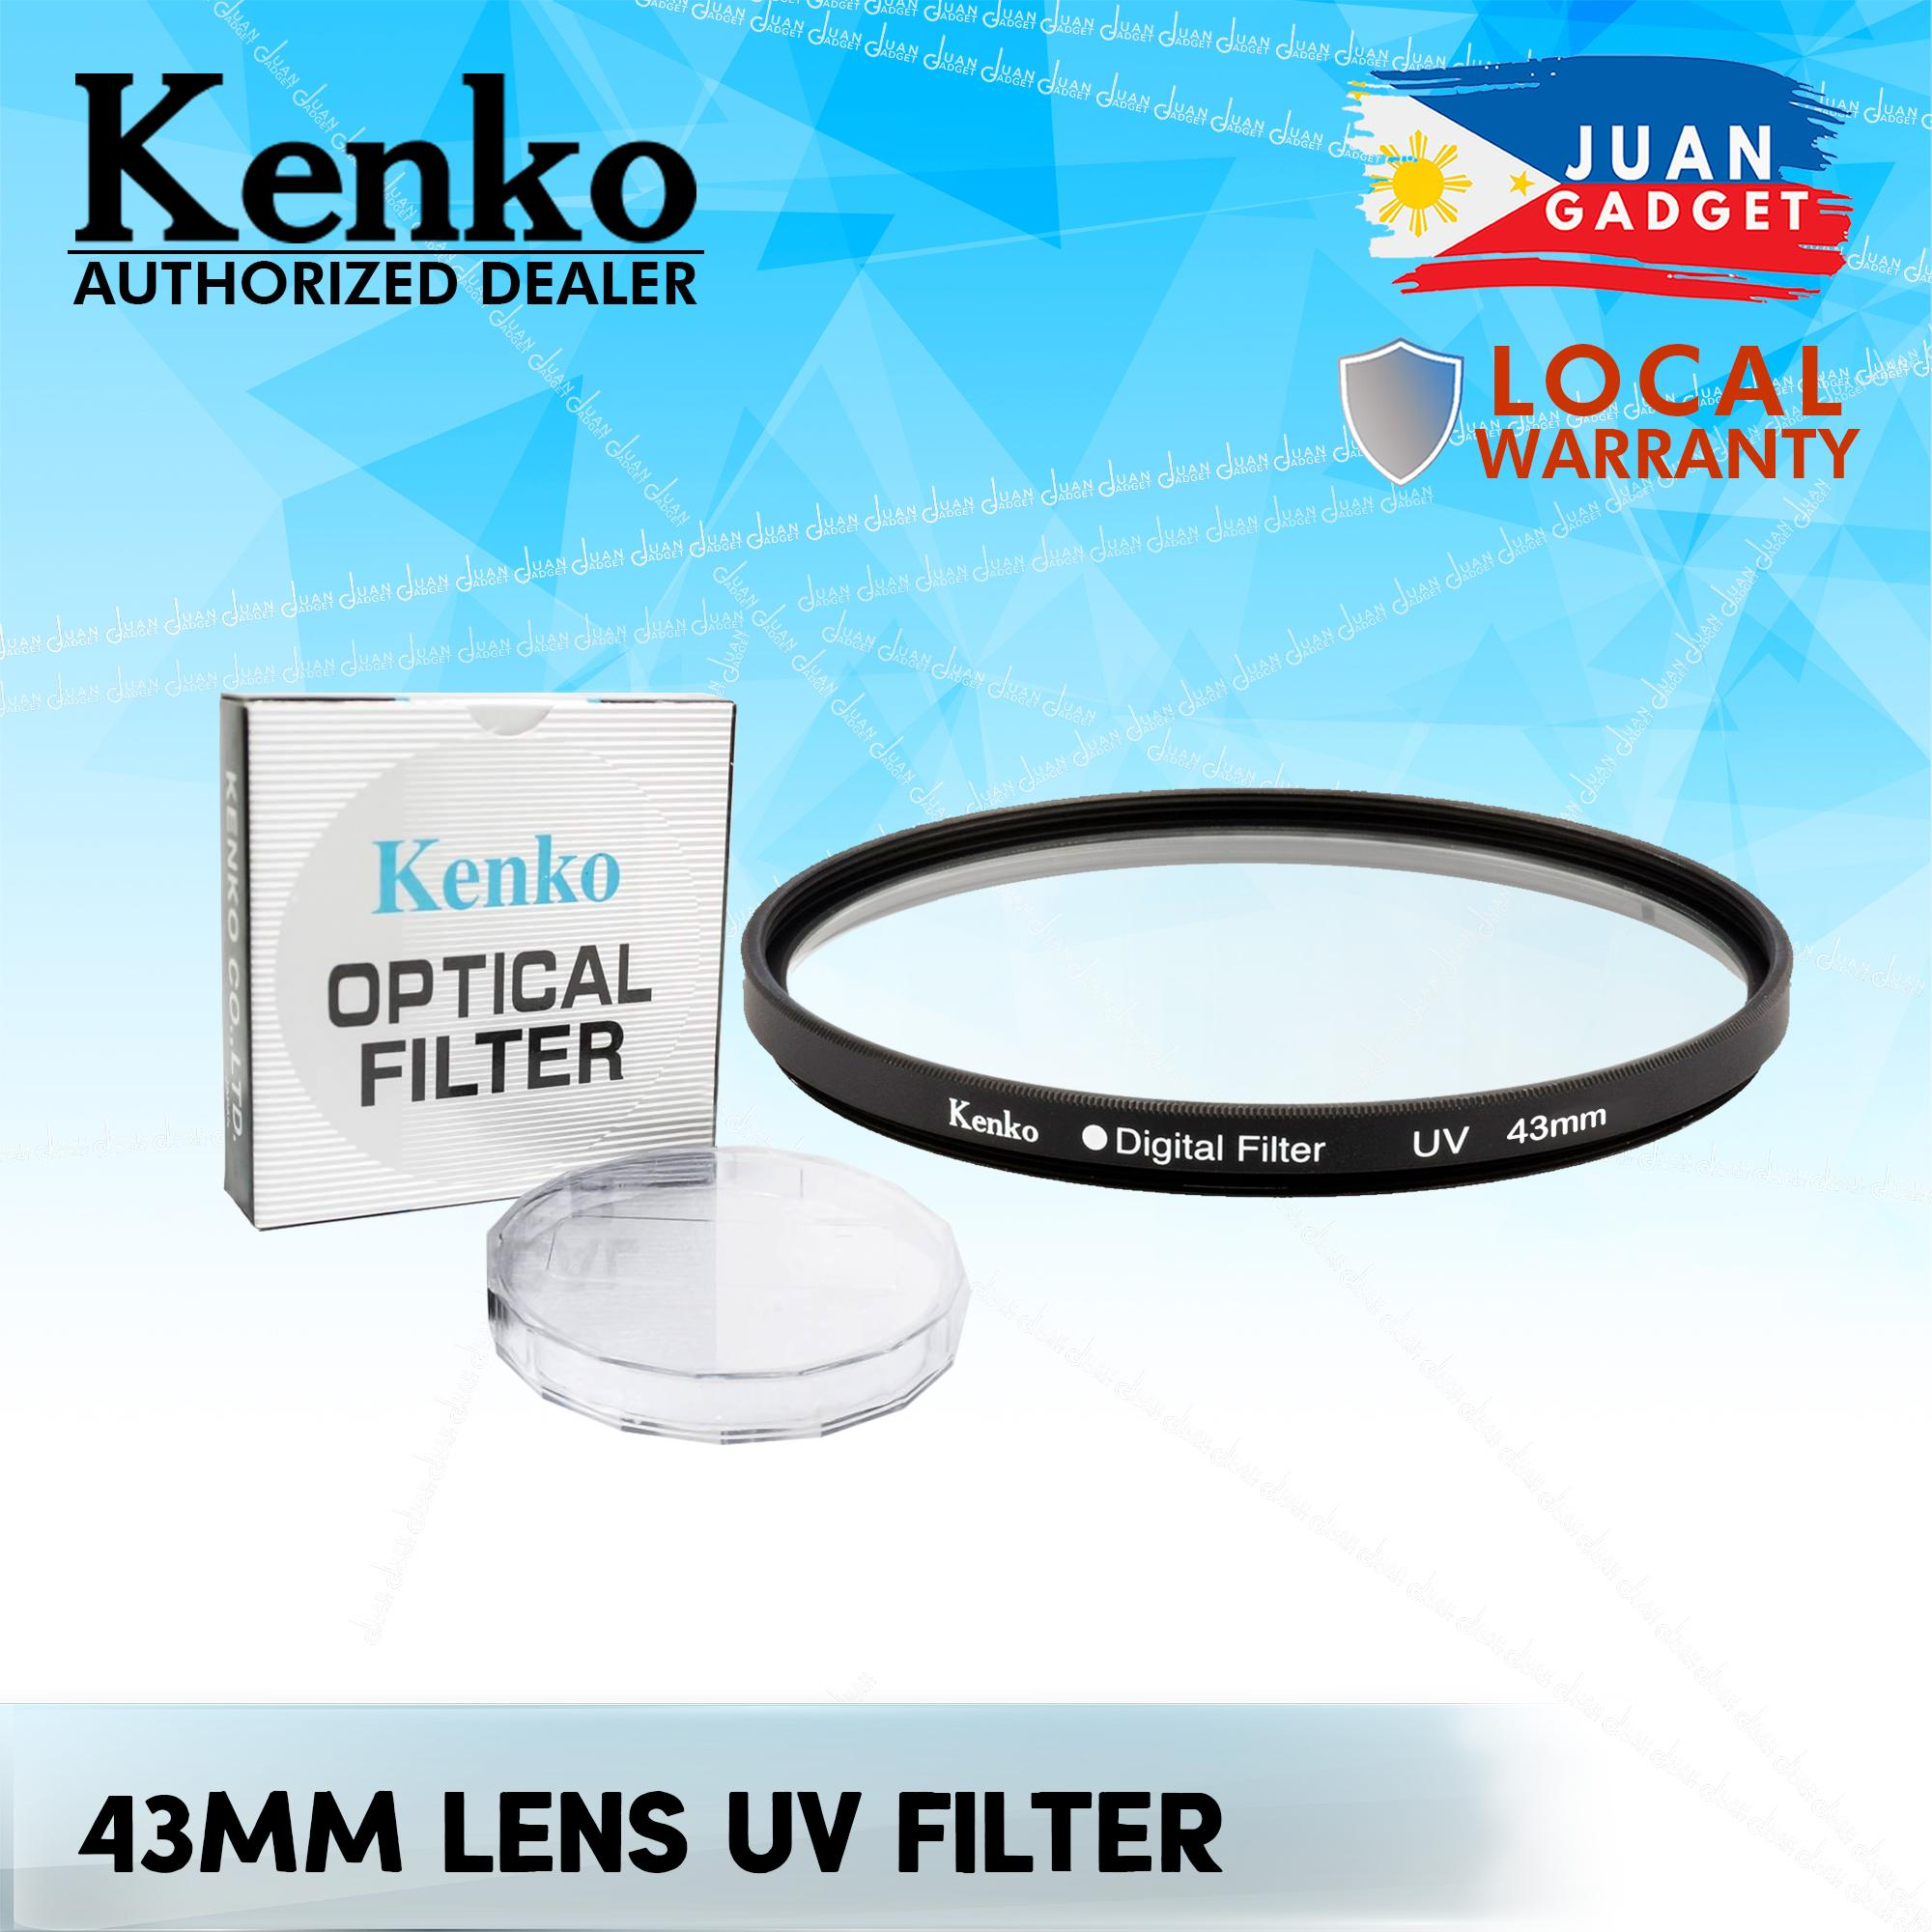 Kenko Uv Lens Filter 43mm For Dslr Canon Nikon Sony Pentax By Juan Gadget.